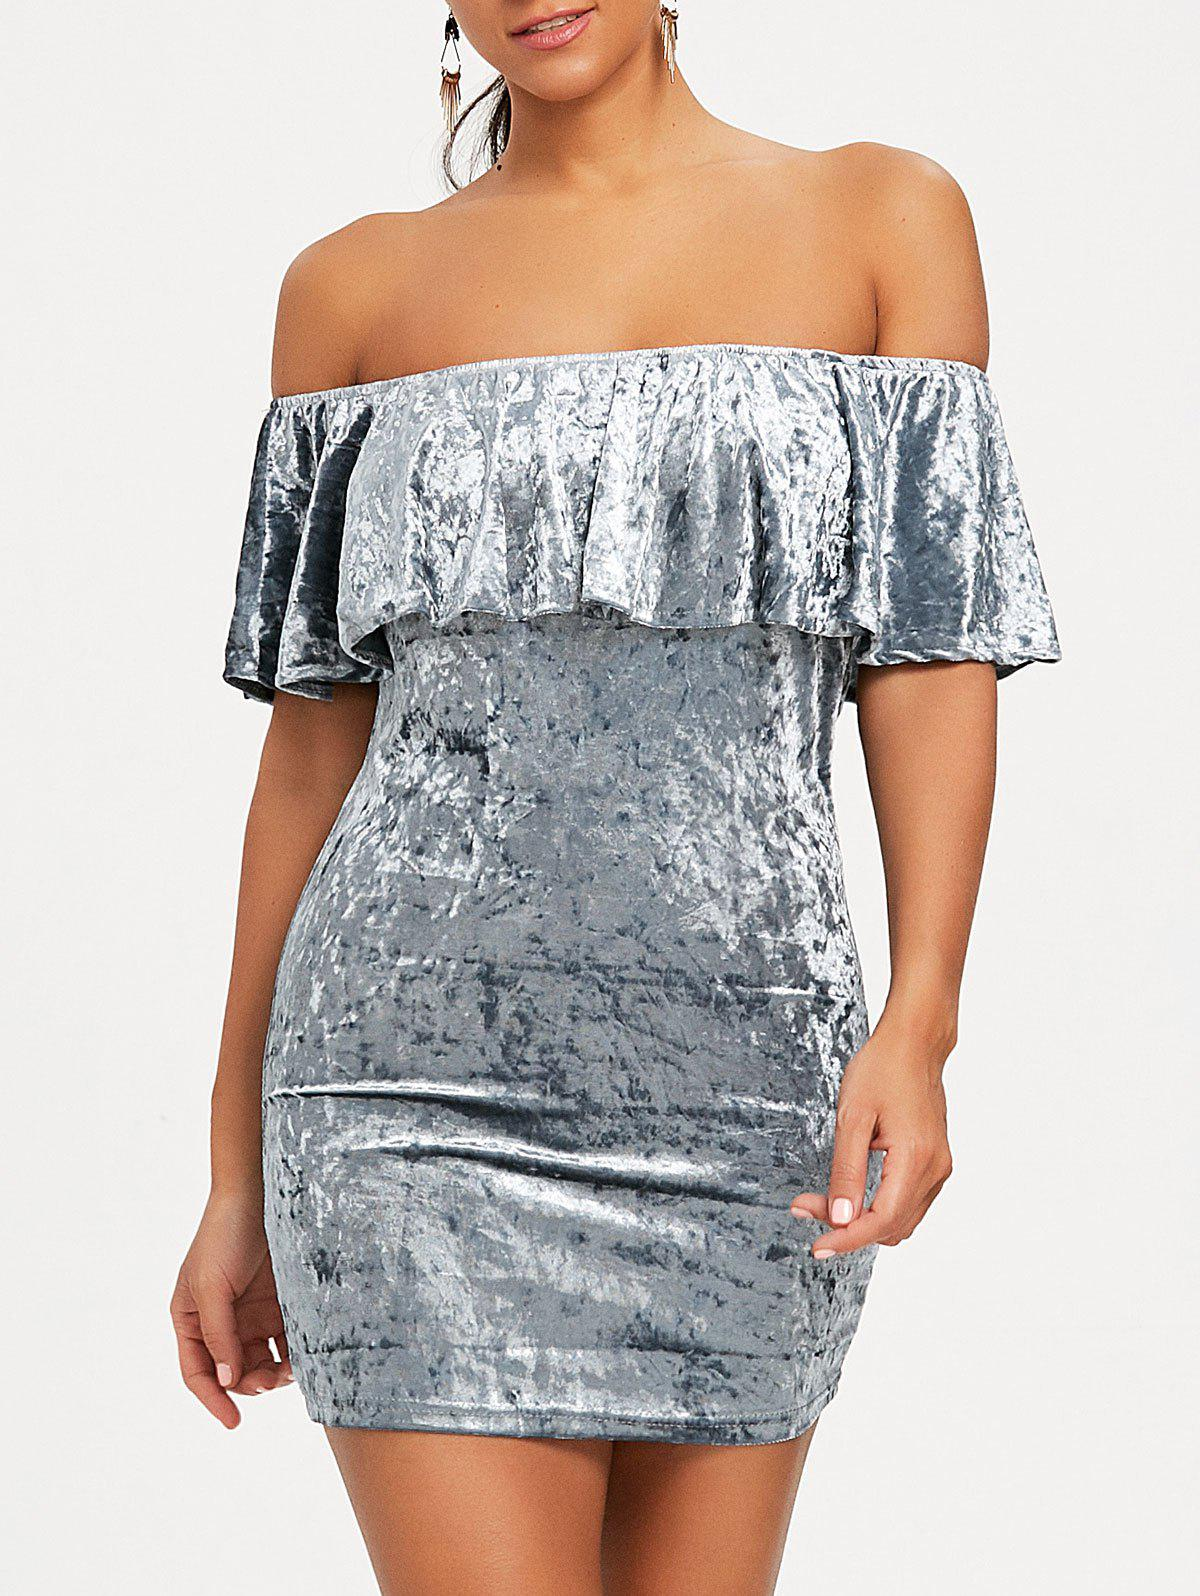 Chic Velvet Off Shoulder Bodycon Party Dress